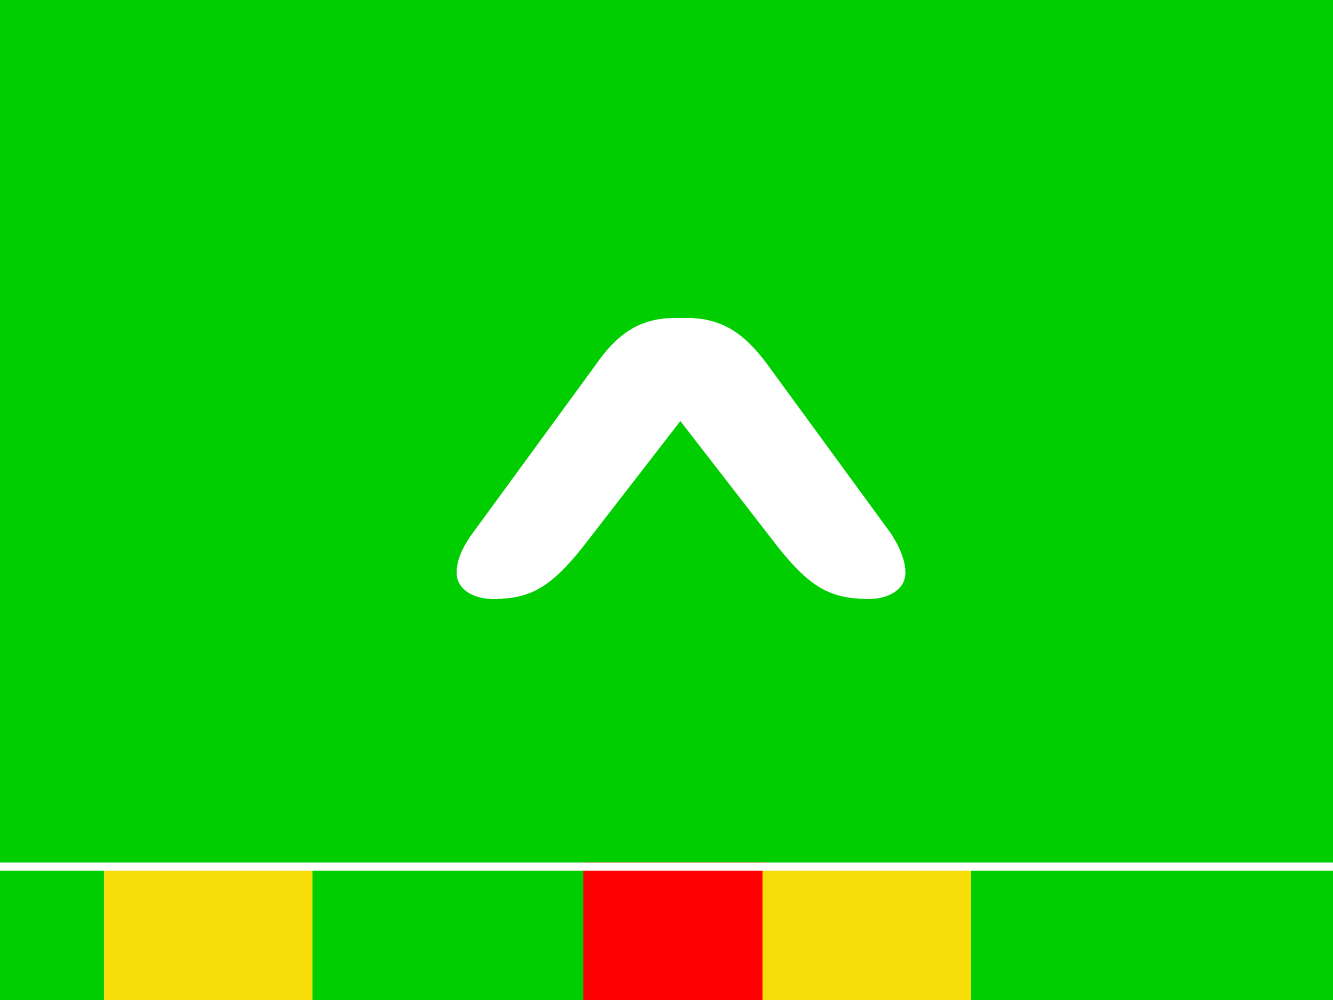 Concept 1: Only colors & symbols used to indicate air quality.